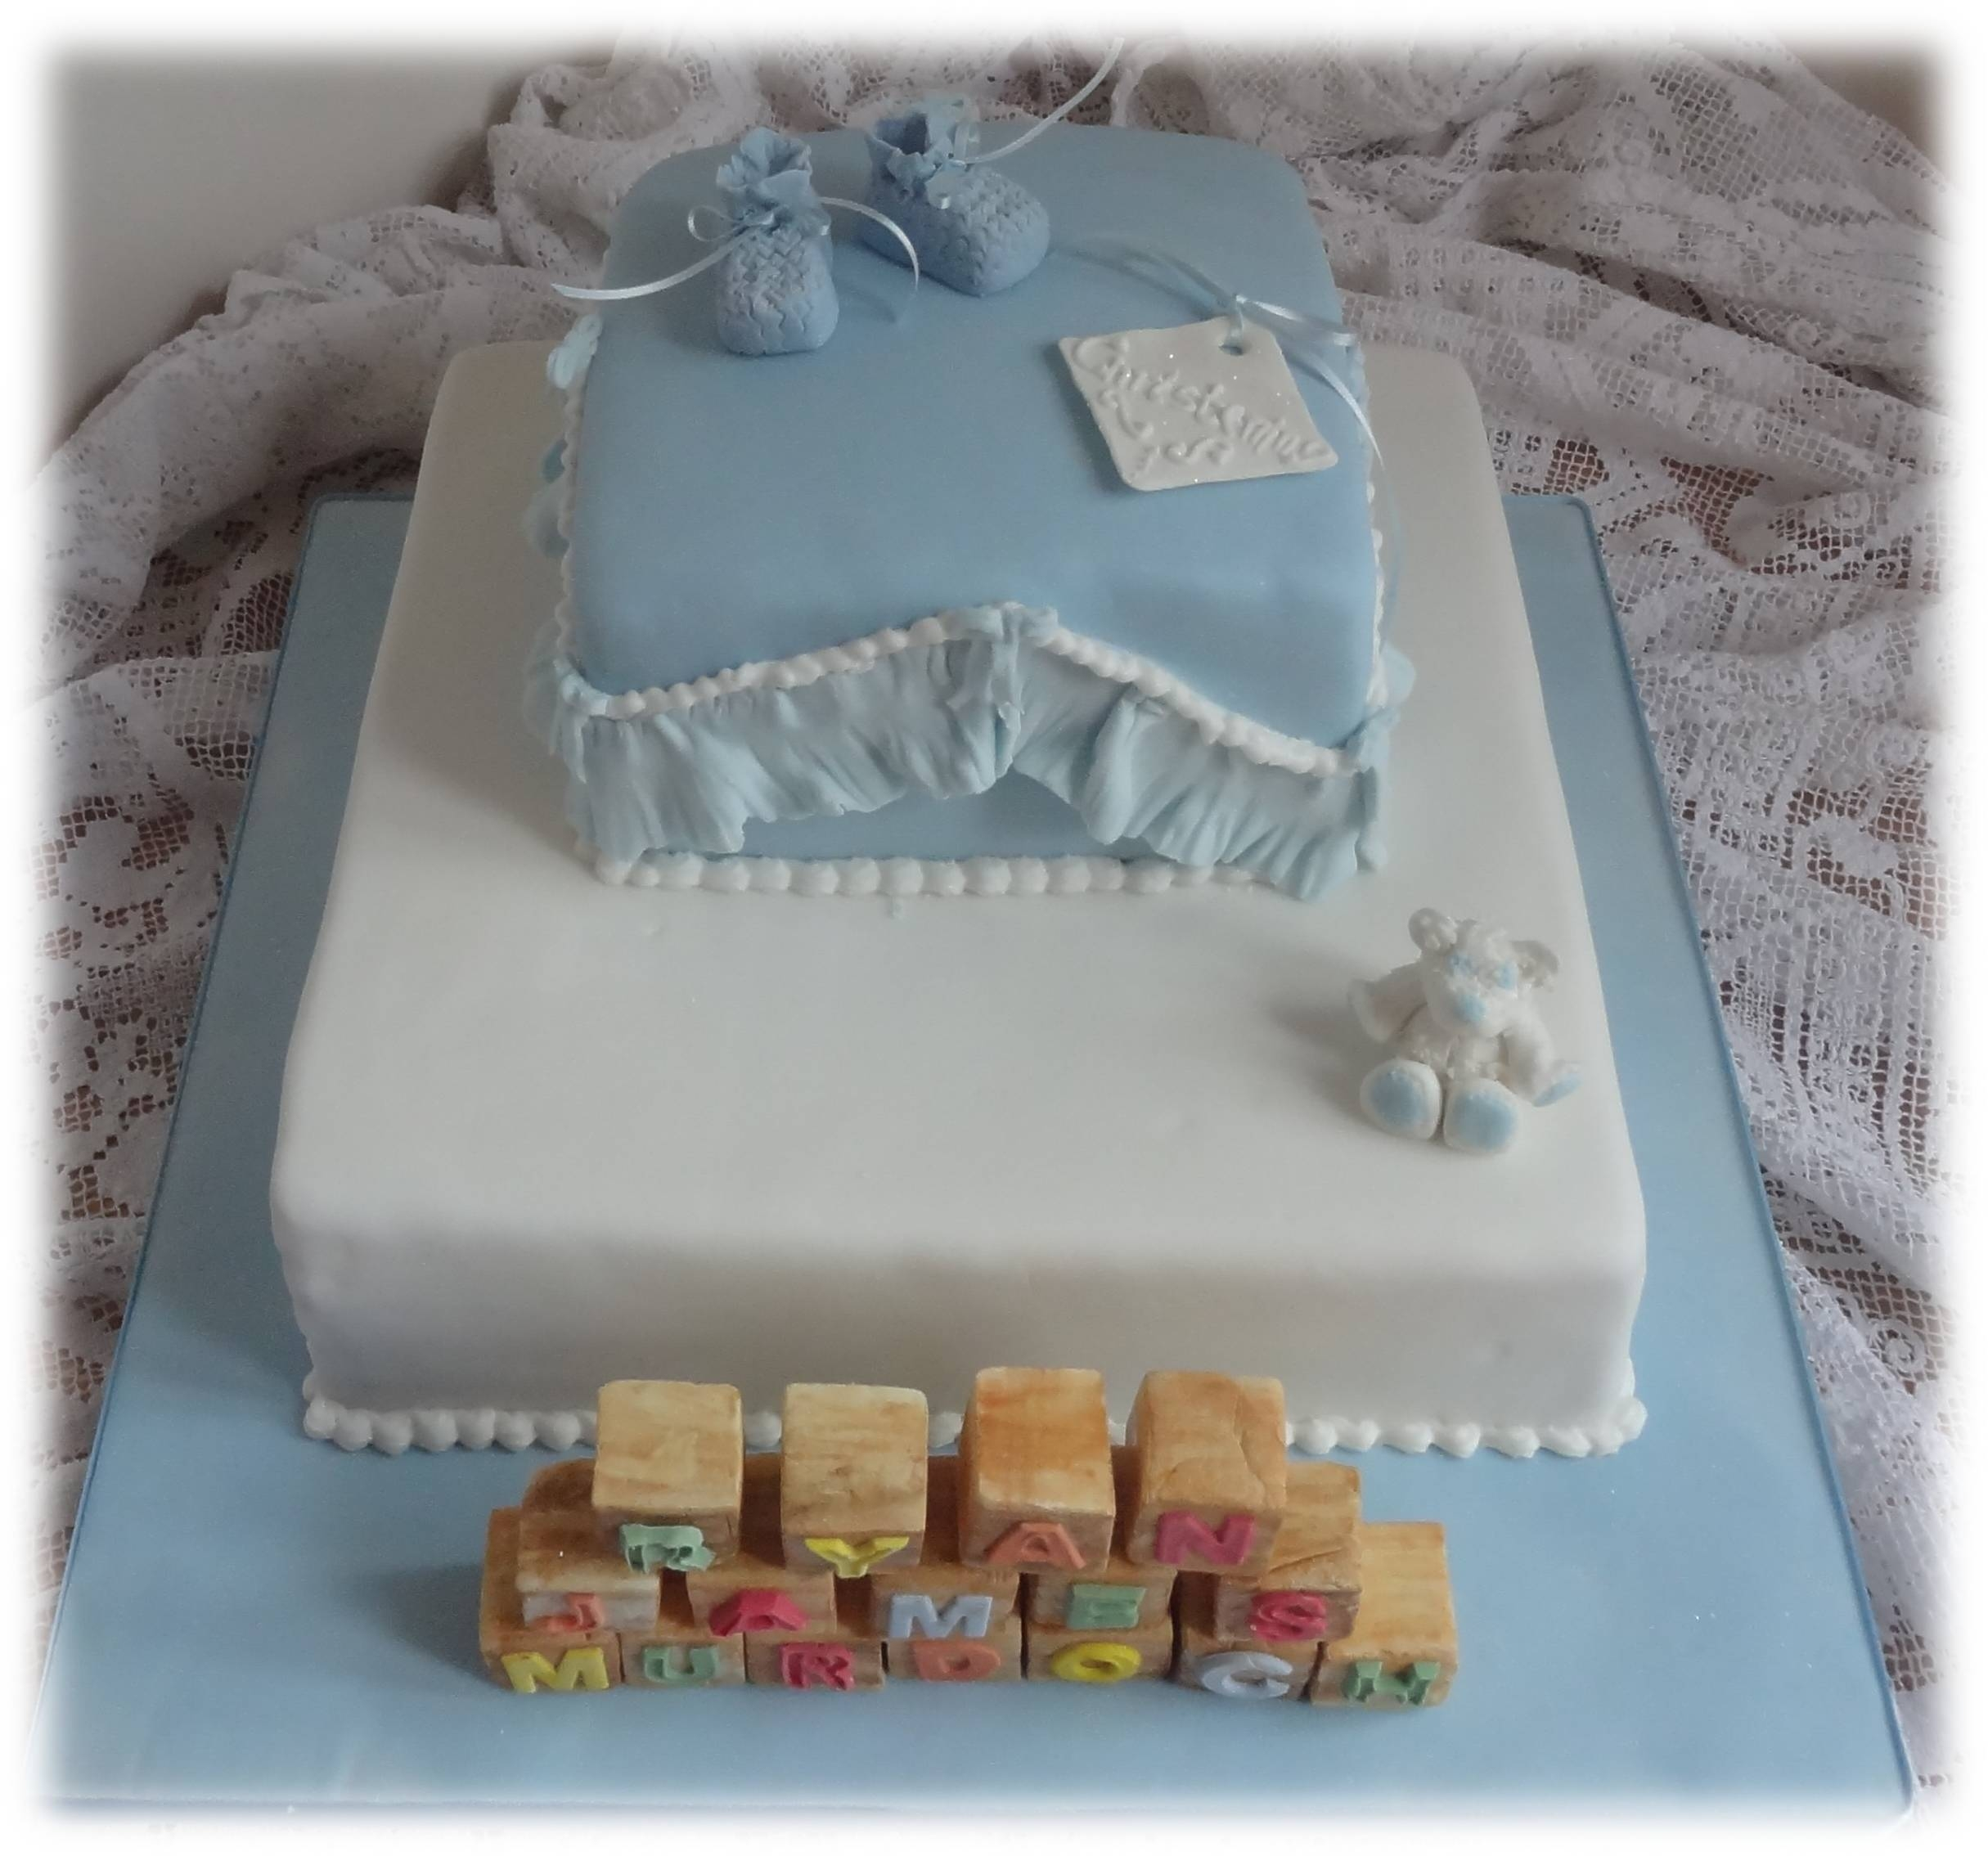 This lady wanted a plain cake with simple 'wooden' block lettering decorations and 'woollen' booties. I added the little teddy because I thought the first tier looked a little empty. I opted for real ribbon in the booties as icing ones snap easily which is not ideal if she wanted to keep them. Chocolate fudge cake and victoria sponge. All decorations made with home made sugarpaste.